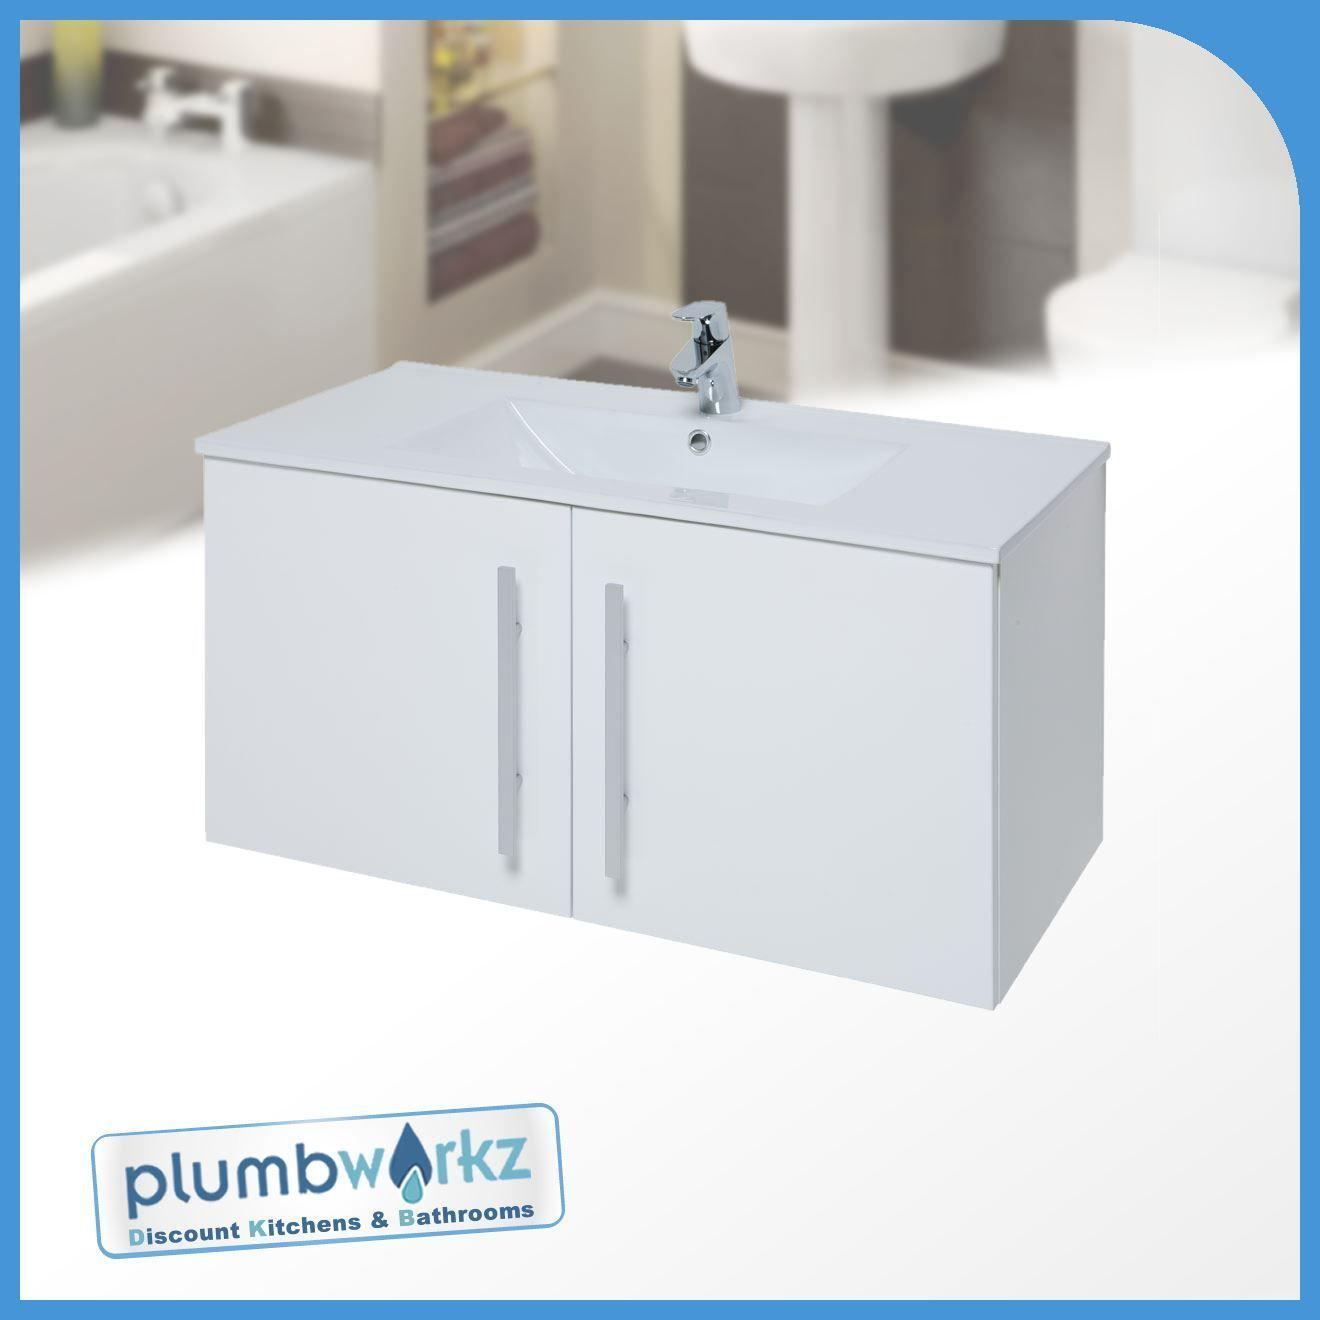 Bathroom vanity unit 900mm - 900mm Wall Mounted Bathroom Vanity Unit Cabinet Wash Basin Sink Wall Hung Ebay